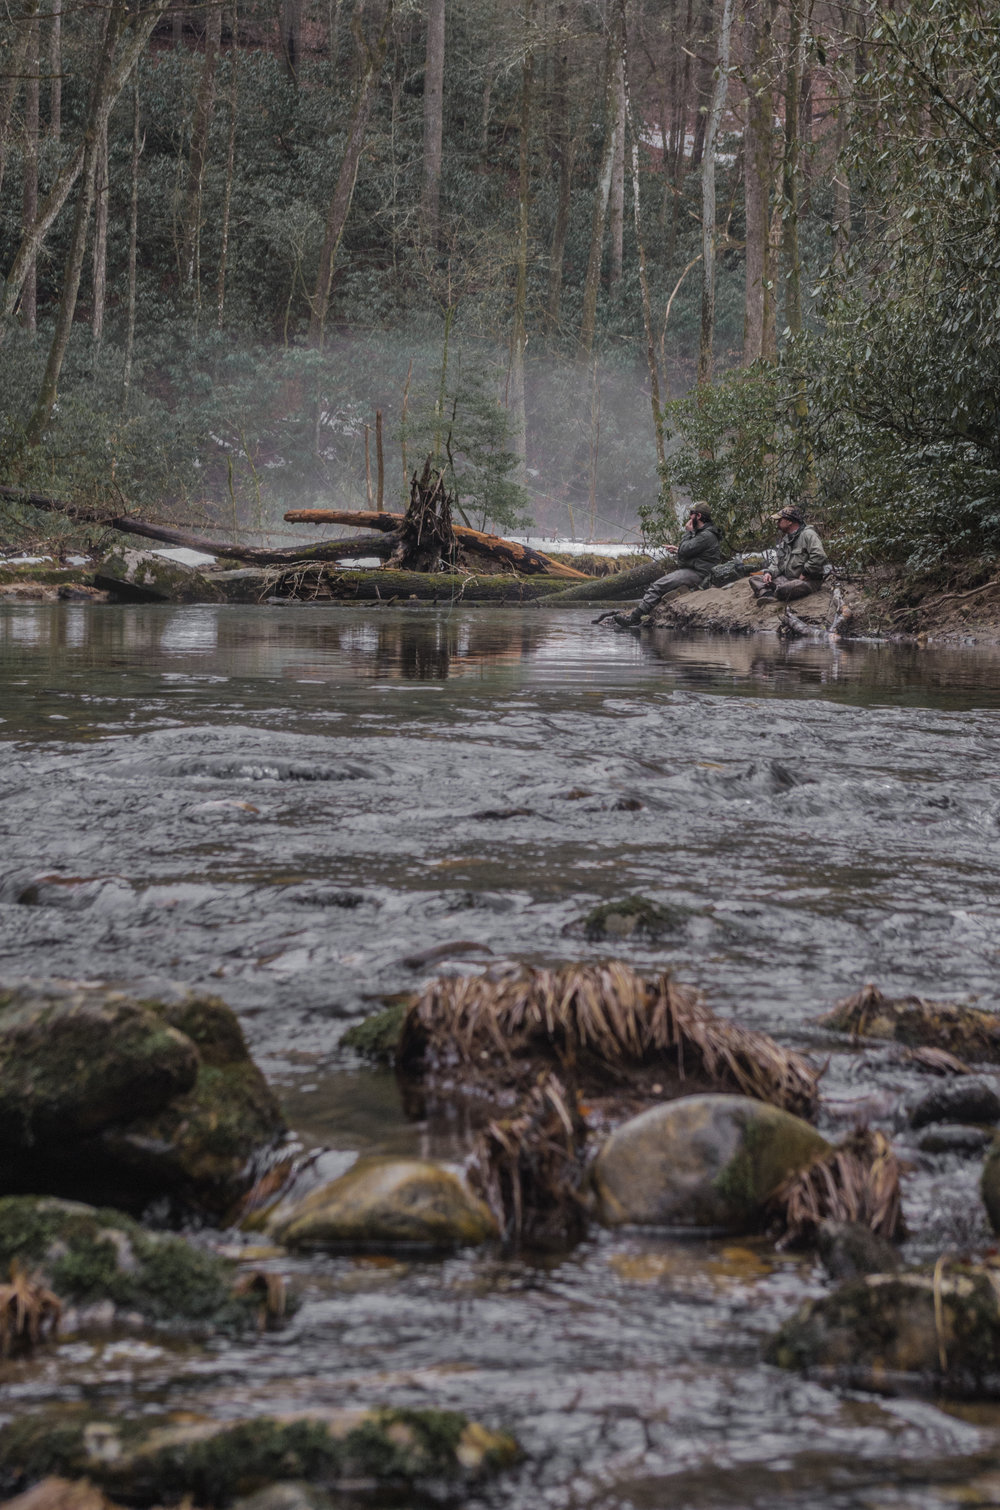 Winter Fly Fishing on the Davidson River